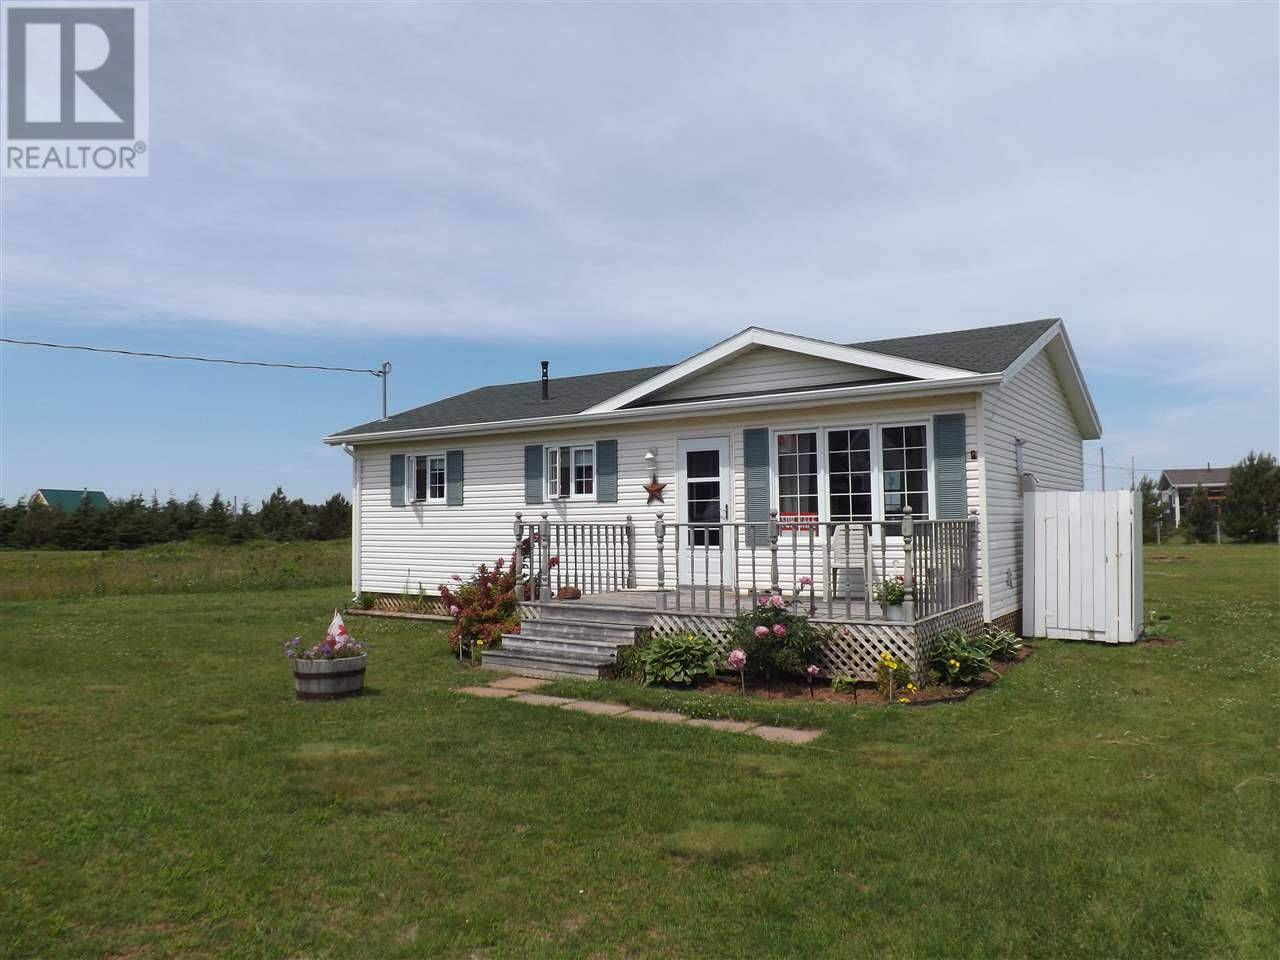 Home for sale at 40 Riley Dr Darnley Prince Edward Island - MLS: 202006671